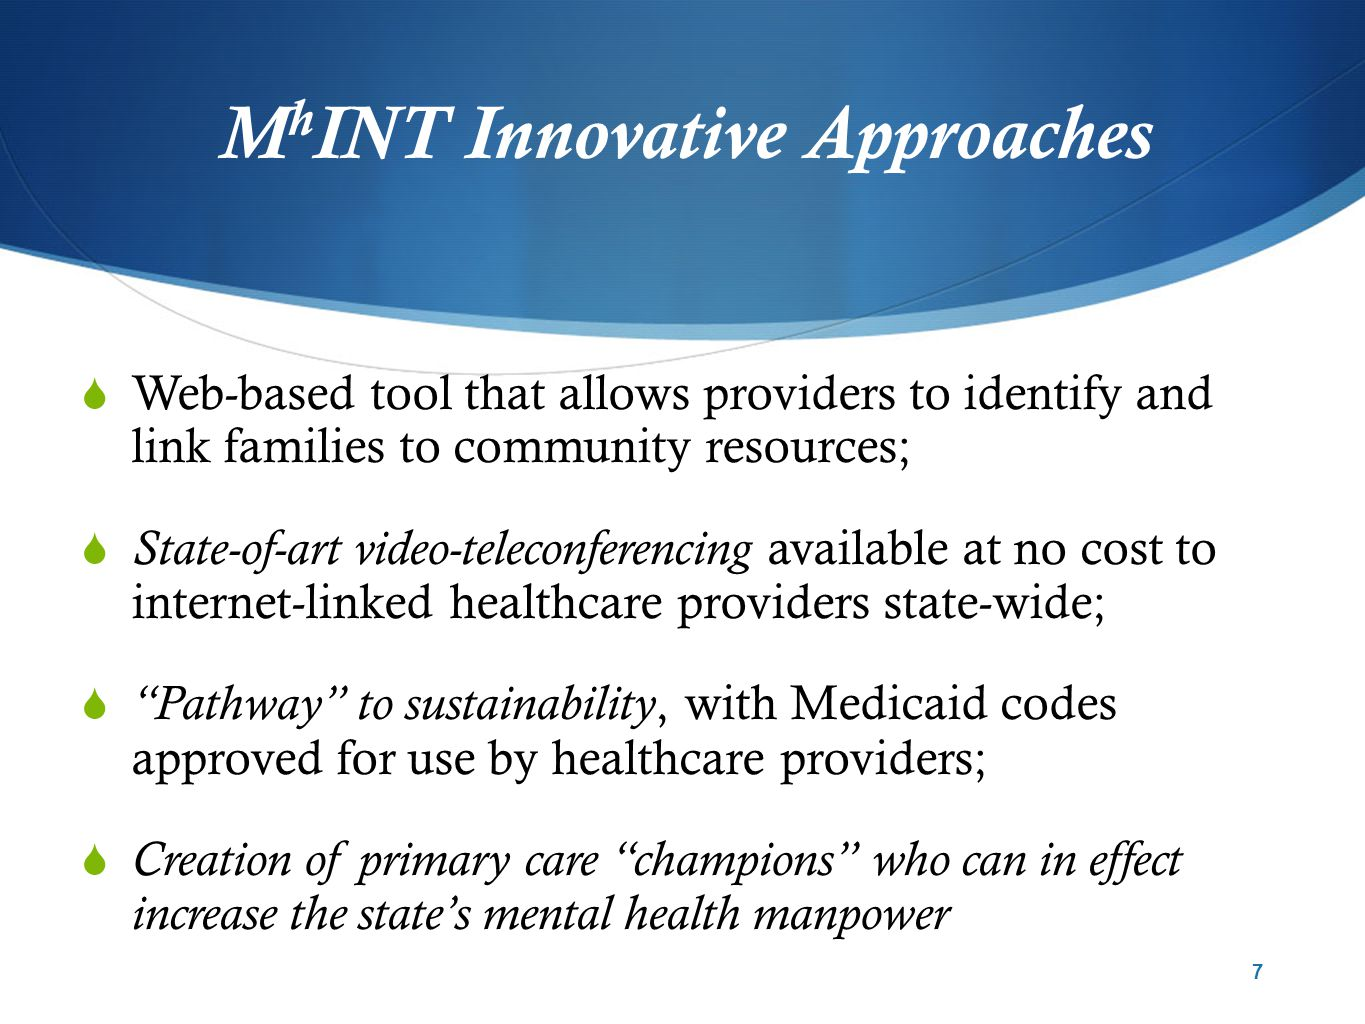 M h INT Innovative Approaches  Web-based tool that allows providers to identify and link families to community resources;  State-of-art video-teleconferencing available at no cost to internet-linked healthcare providers state-wide;  Pathway to sustainability, with Medicaid codes approved for use by healthcare providers;  Creation of primary care champions who can in effect increase the state's mental health manpower 7